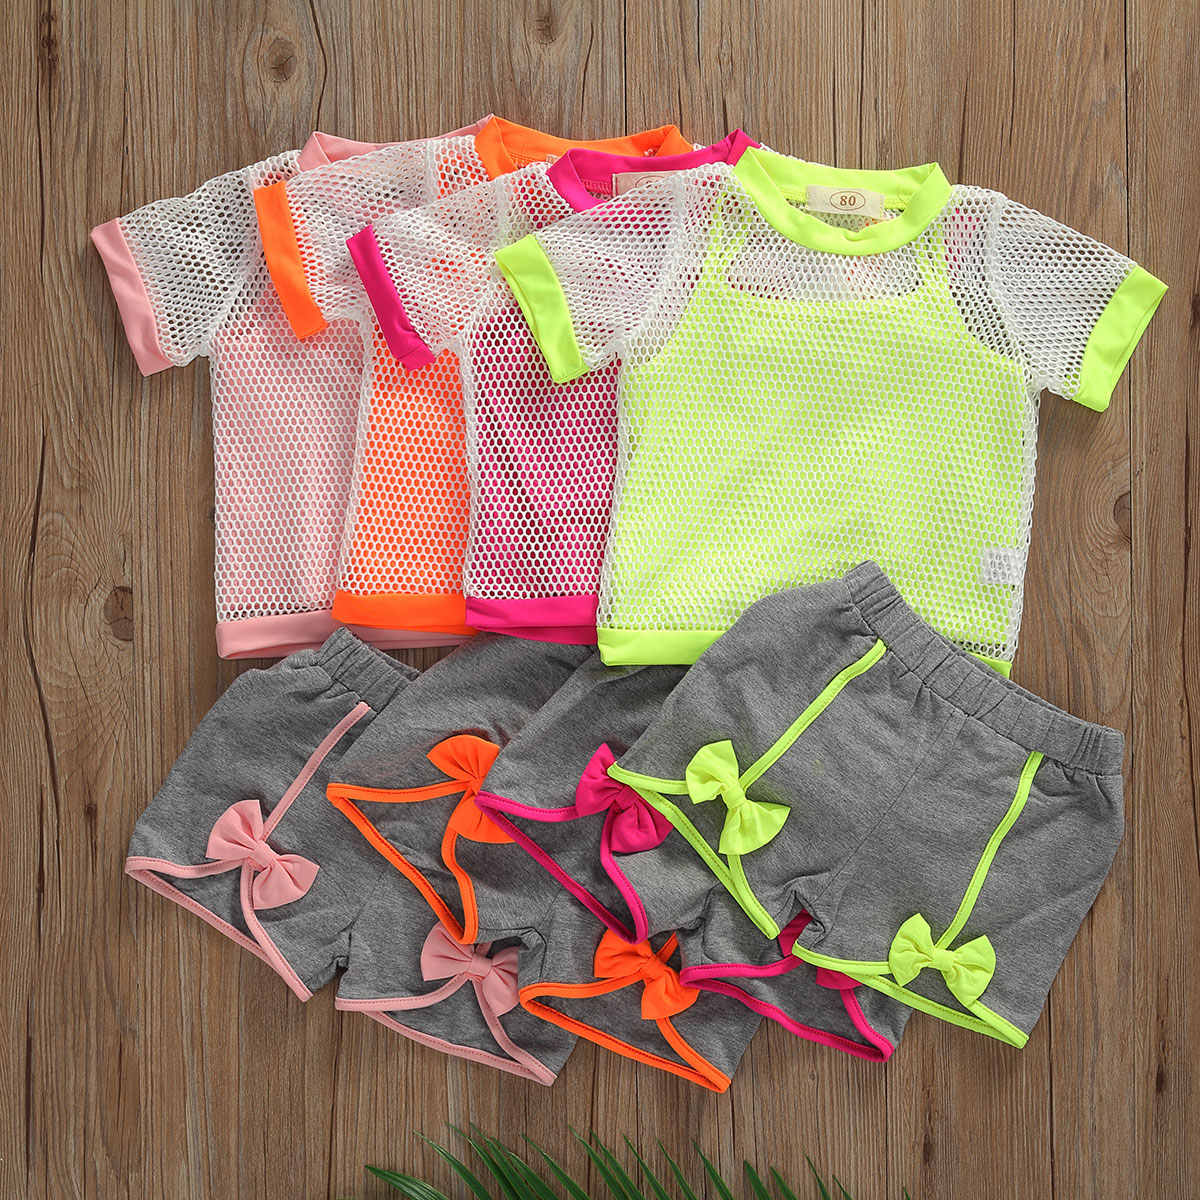 Toddler Baby Girls Clothes Summer Casual T Shirt Tops Shorts Pants Sport Outfits